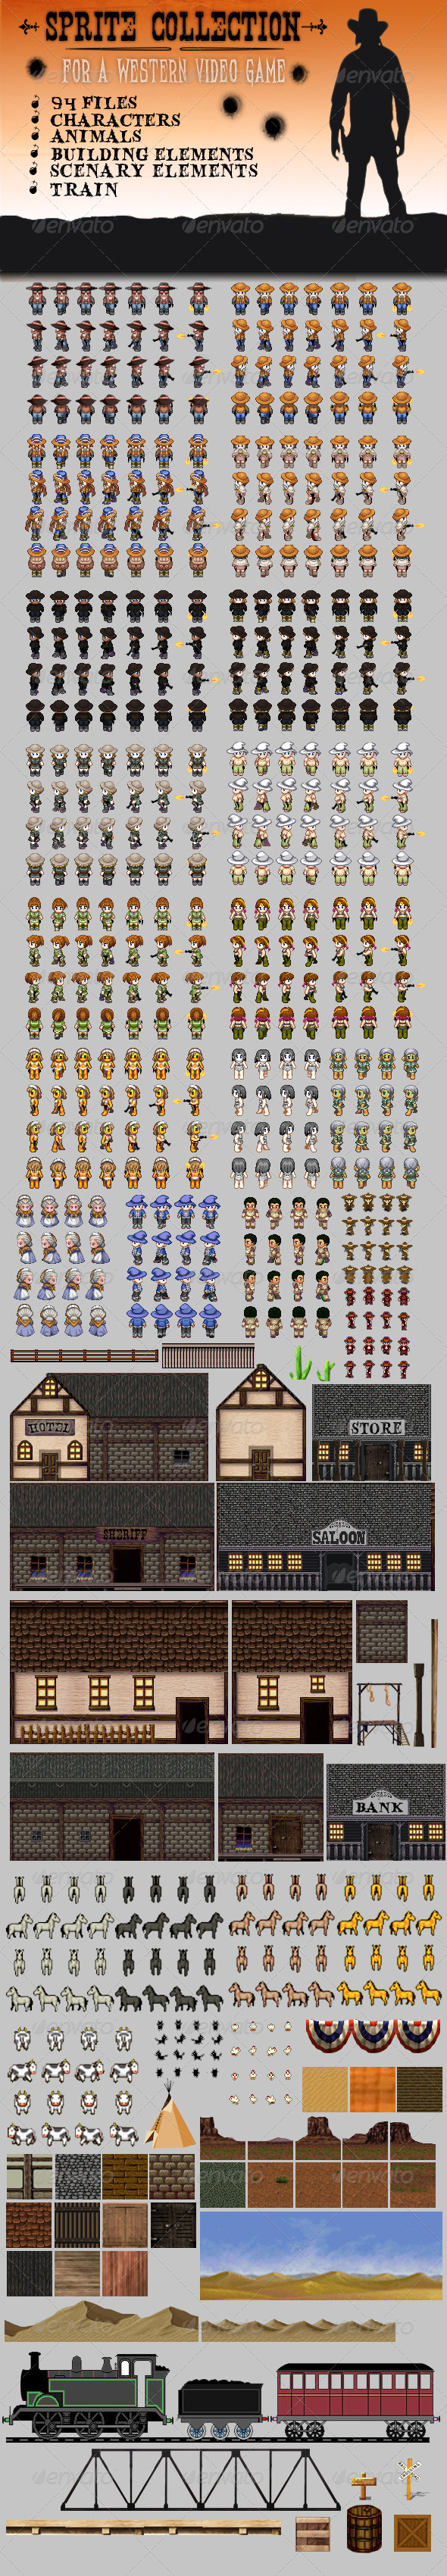 GraphicRiver Sprite Tilesets for a Western Game 3459721